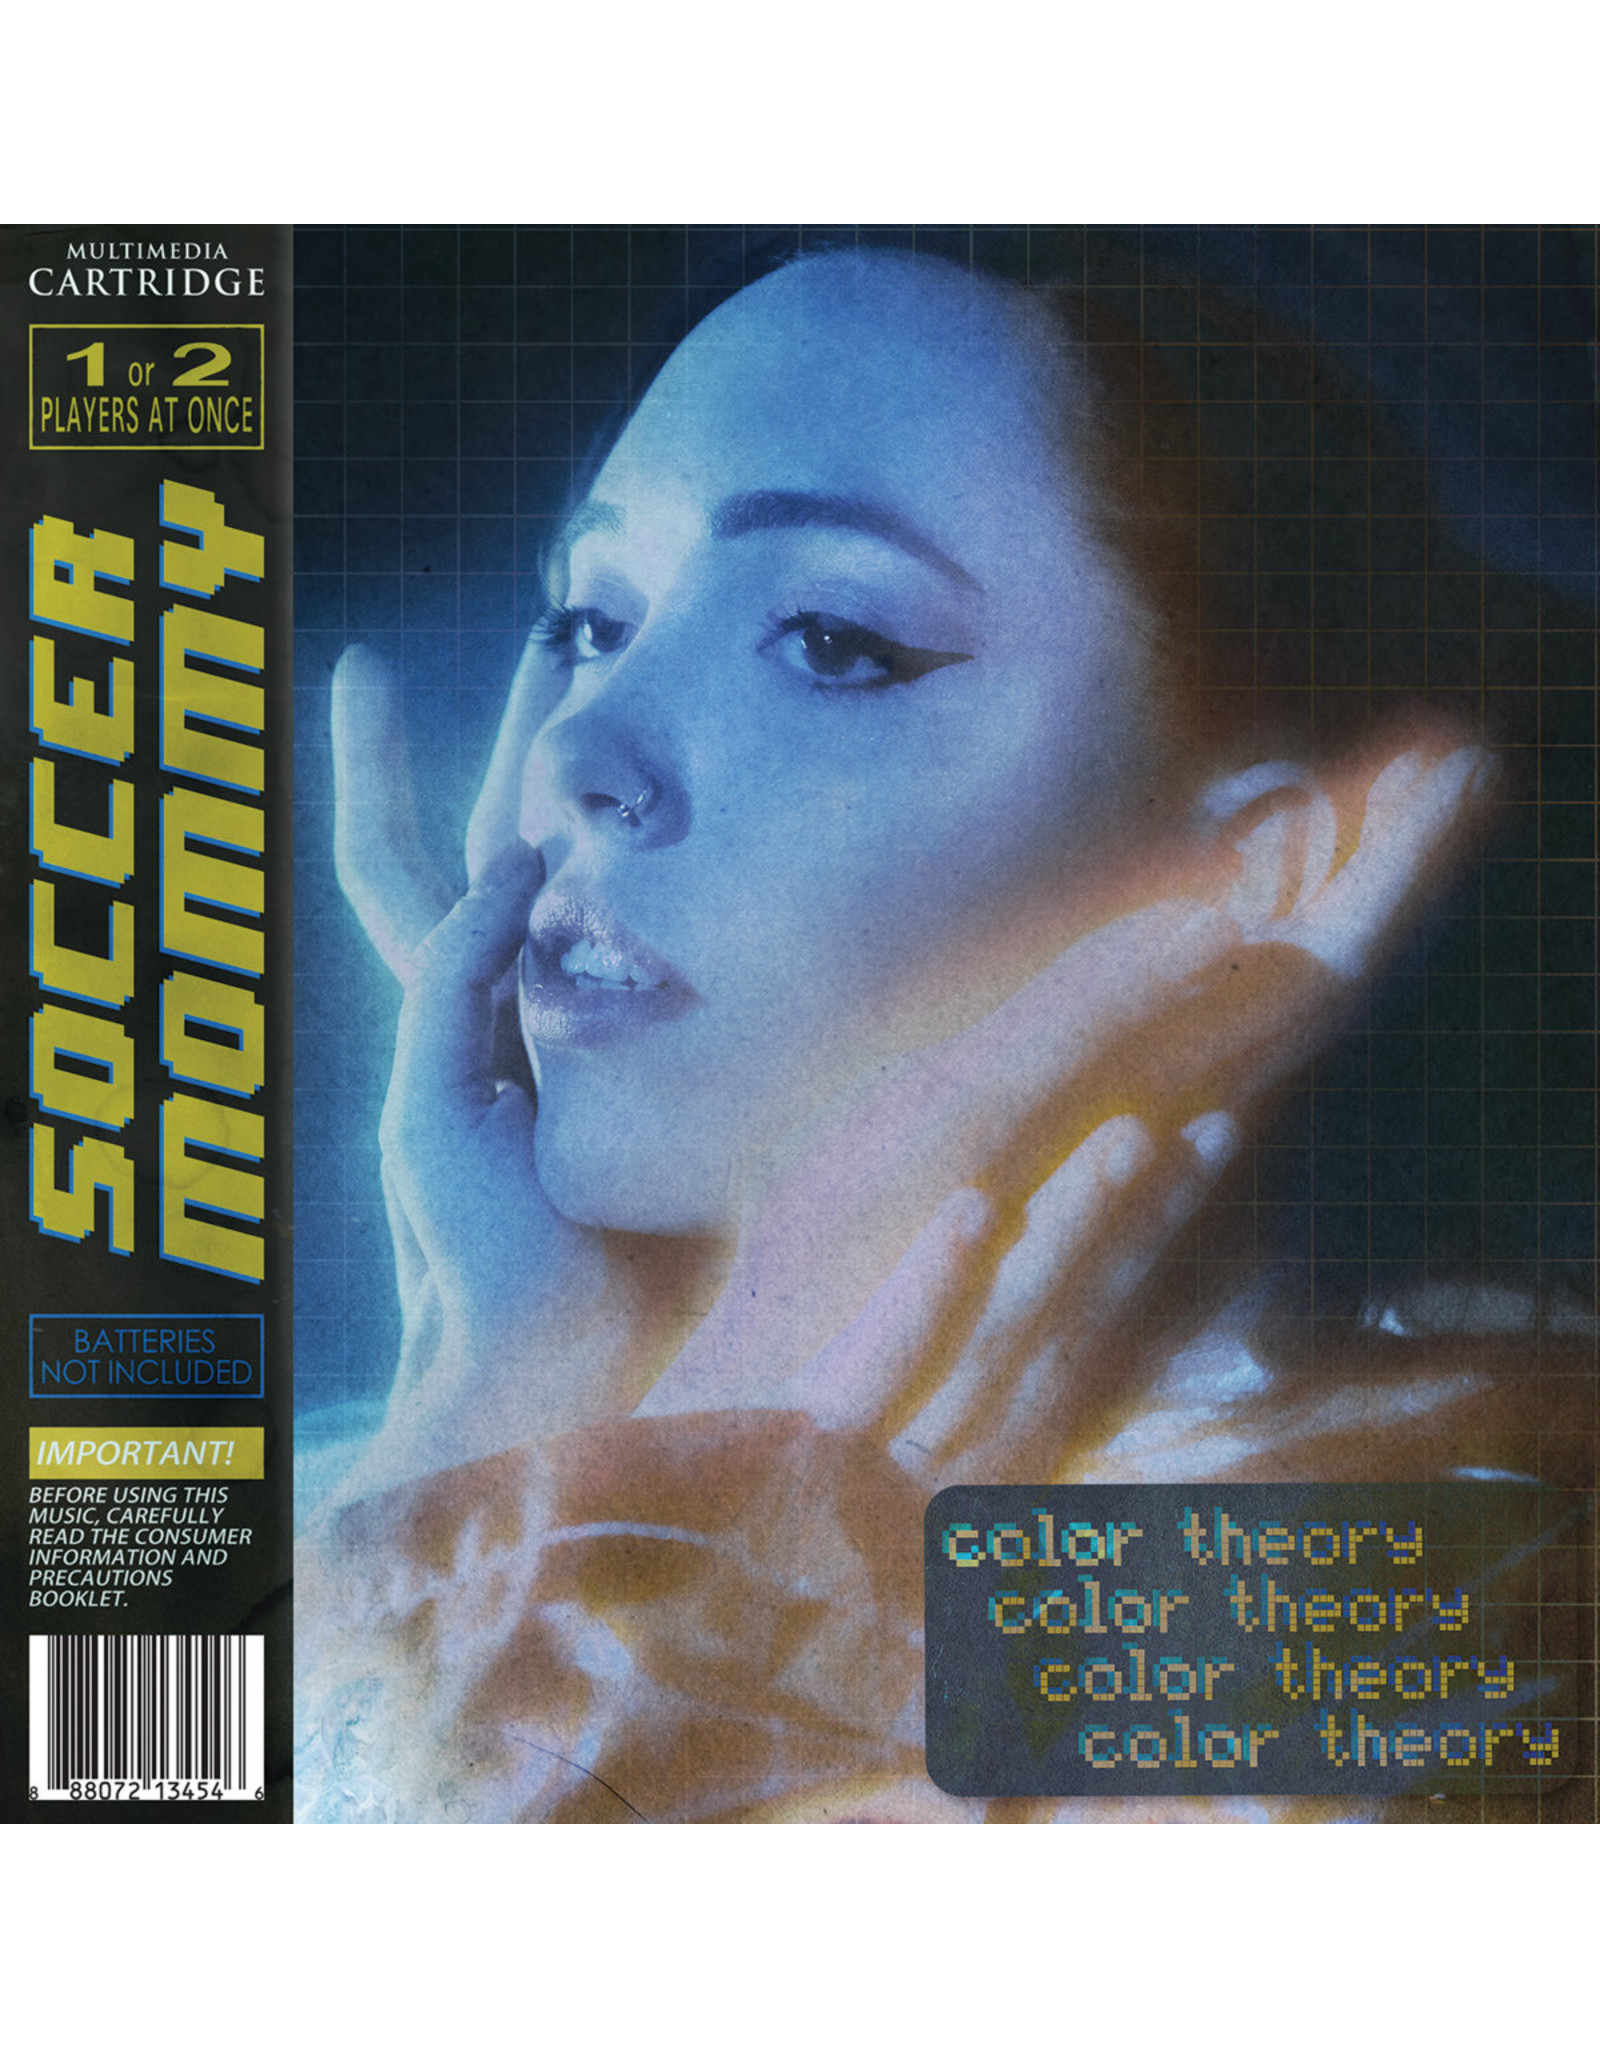 New Vinyl Soccer Mommy - Color Theory LP